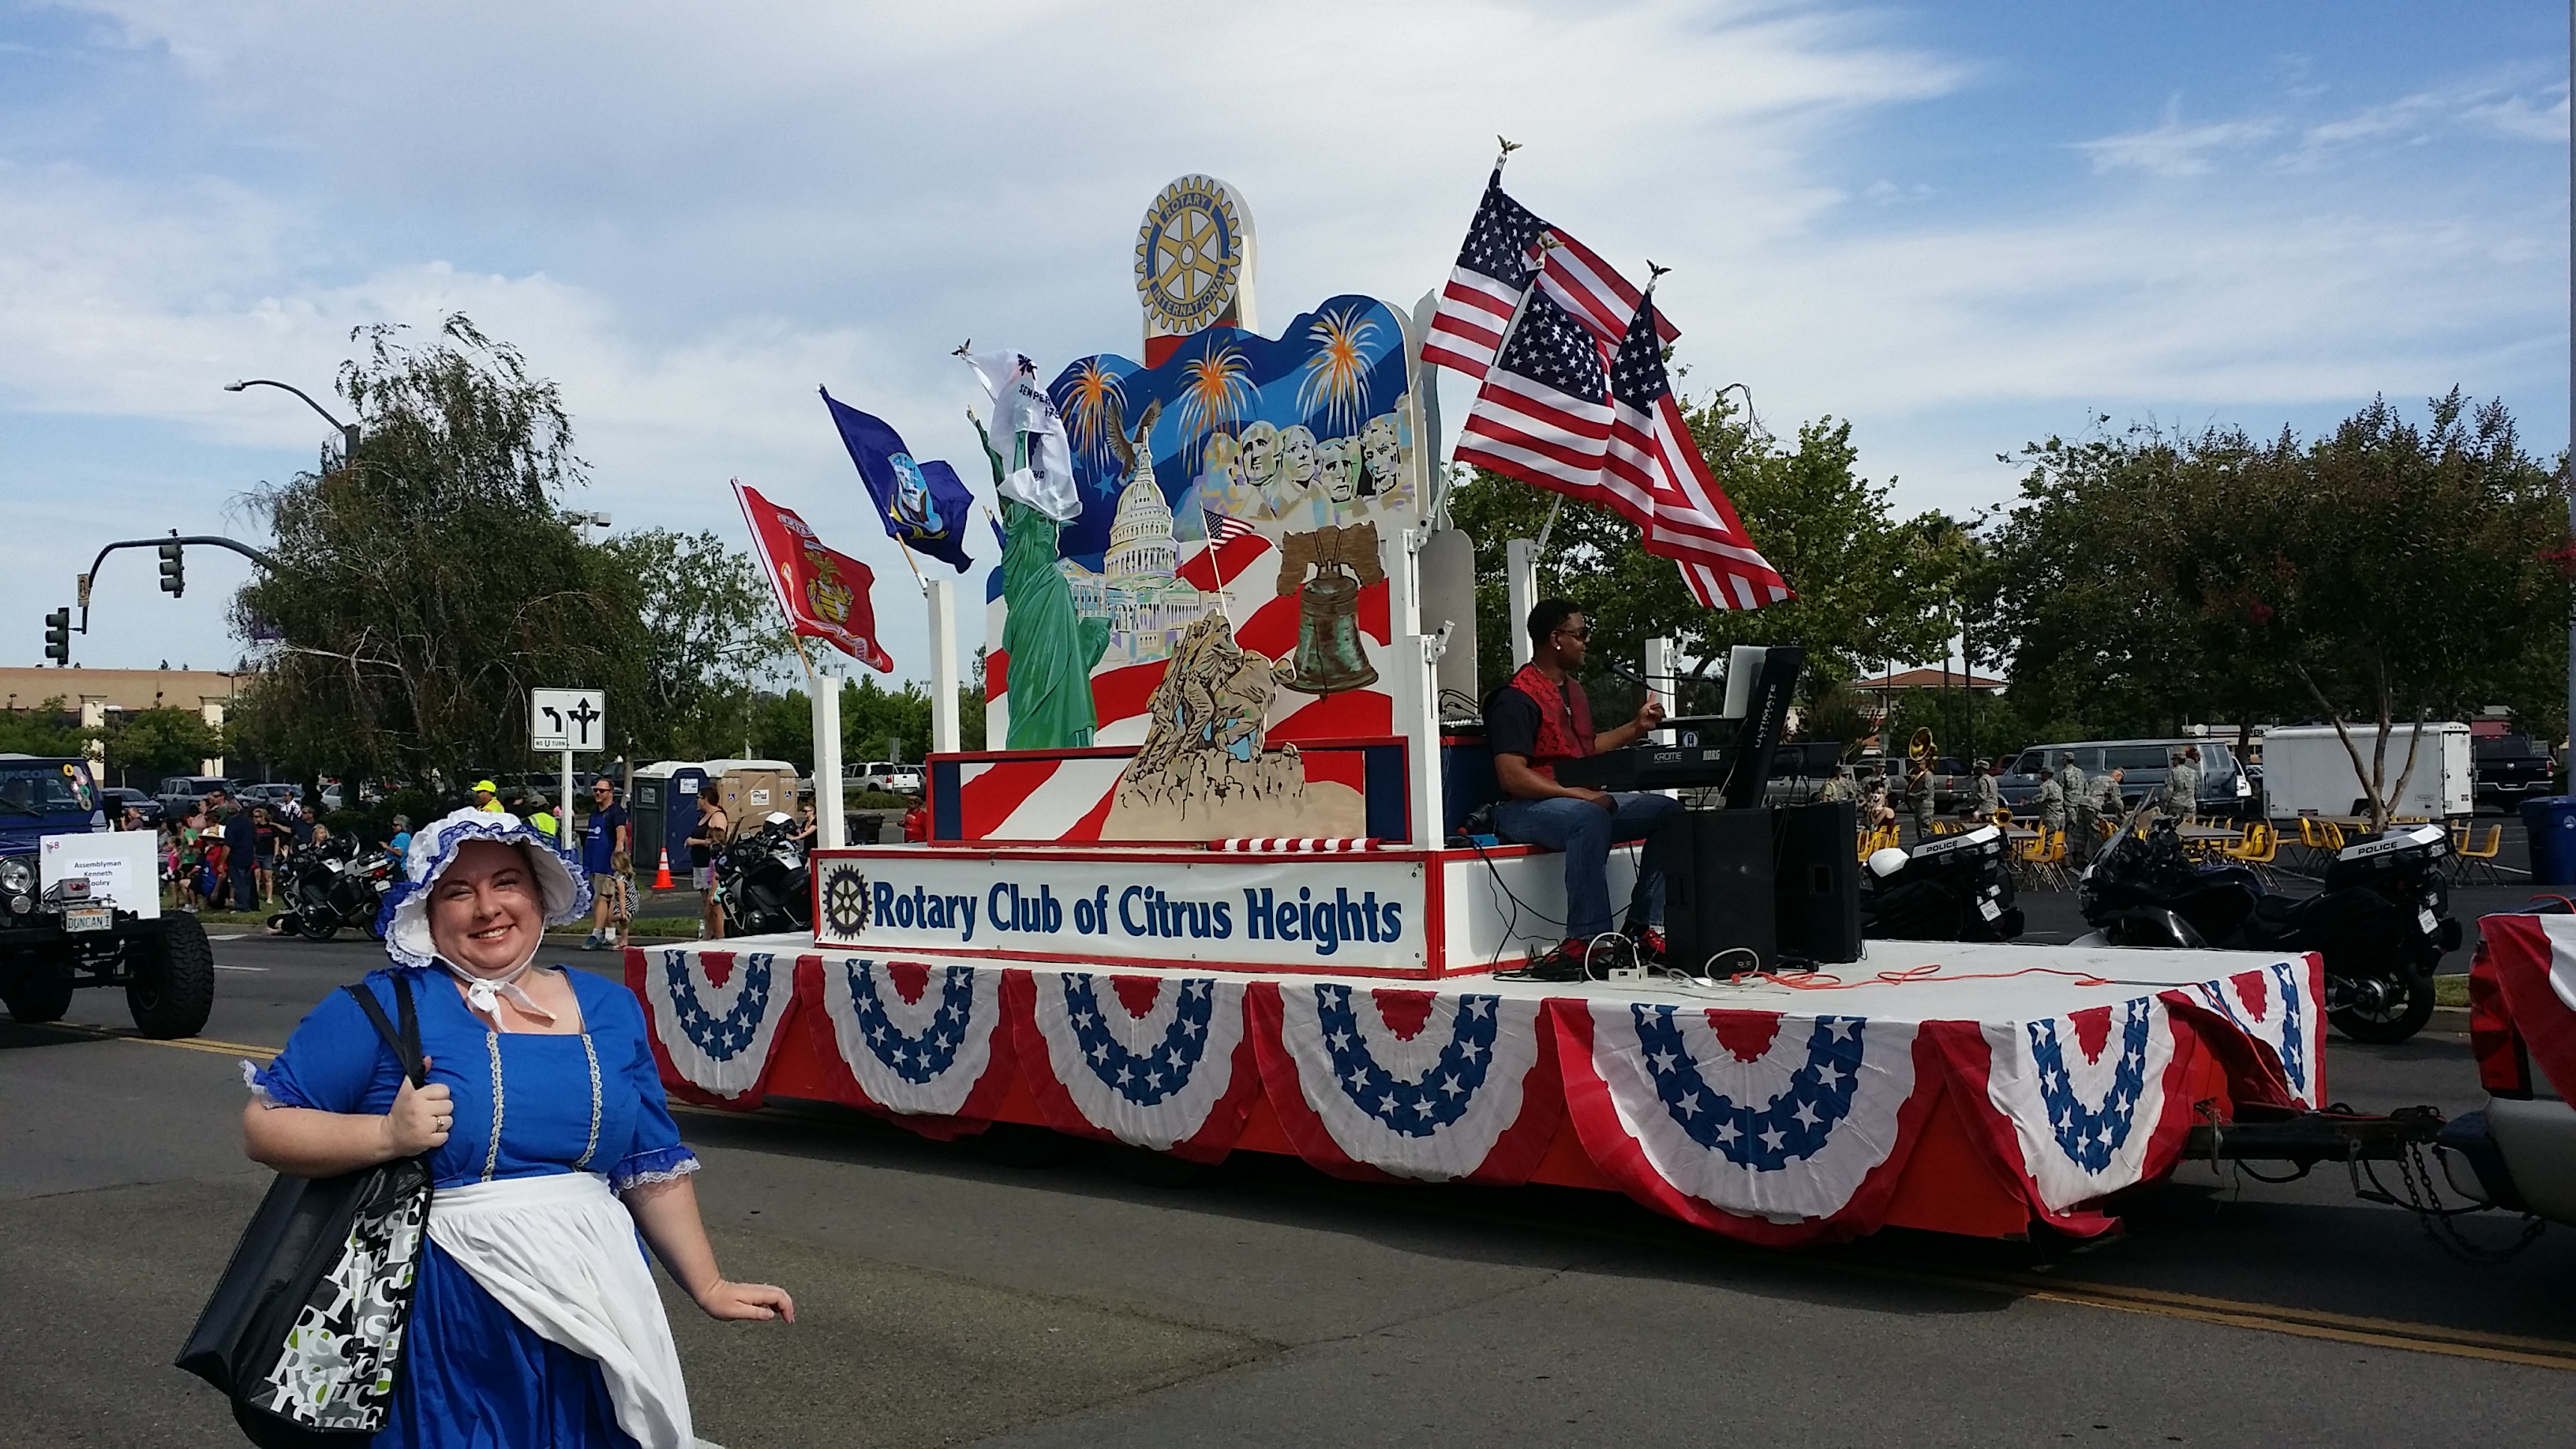 The Rotary Club float